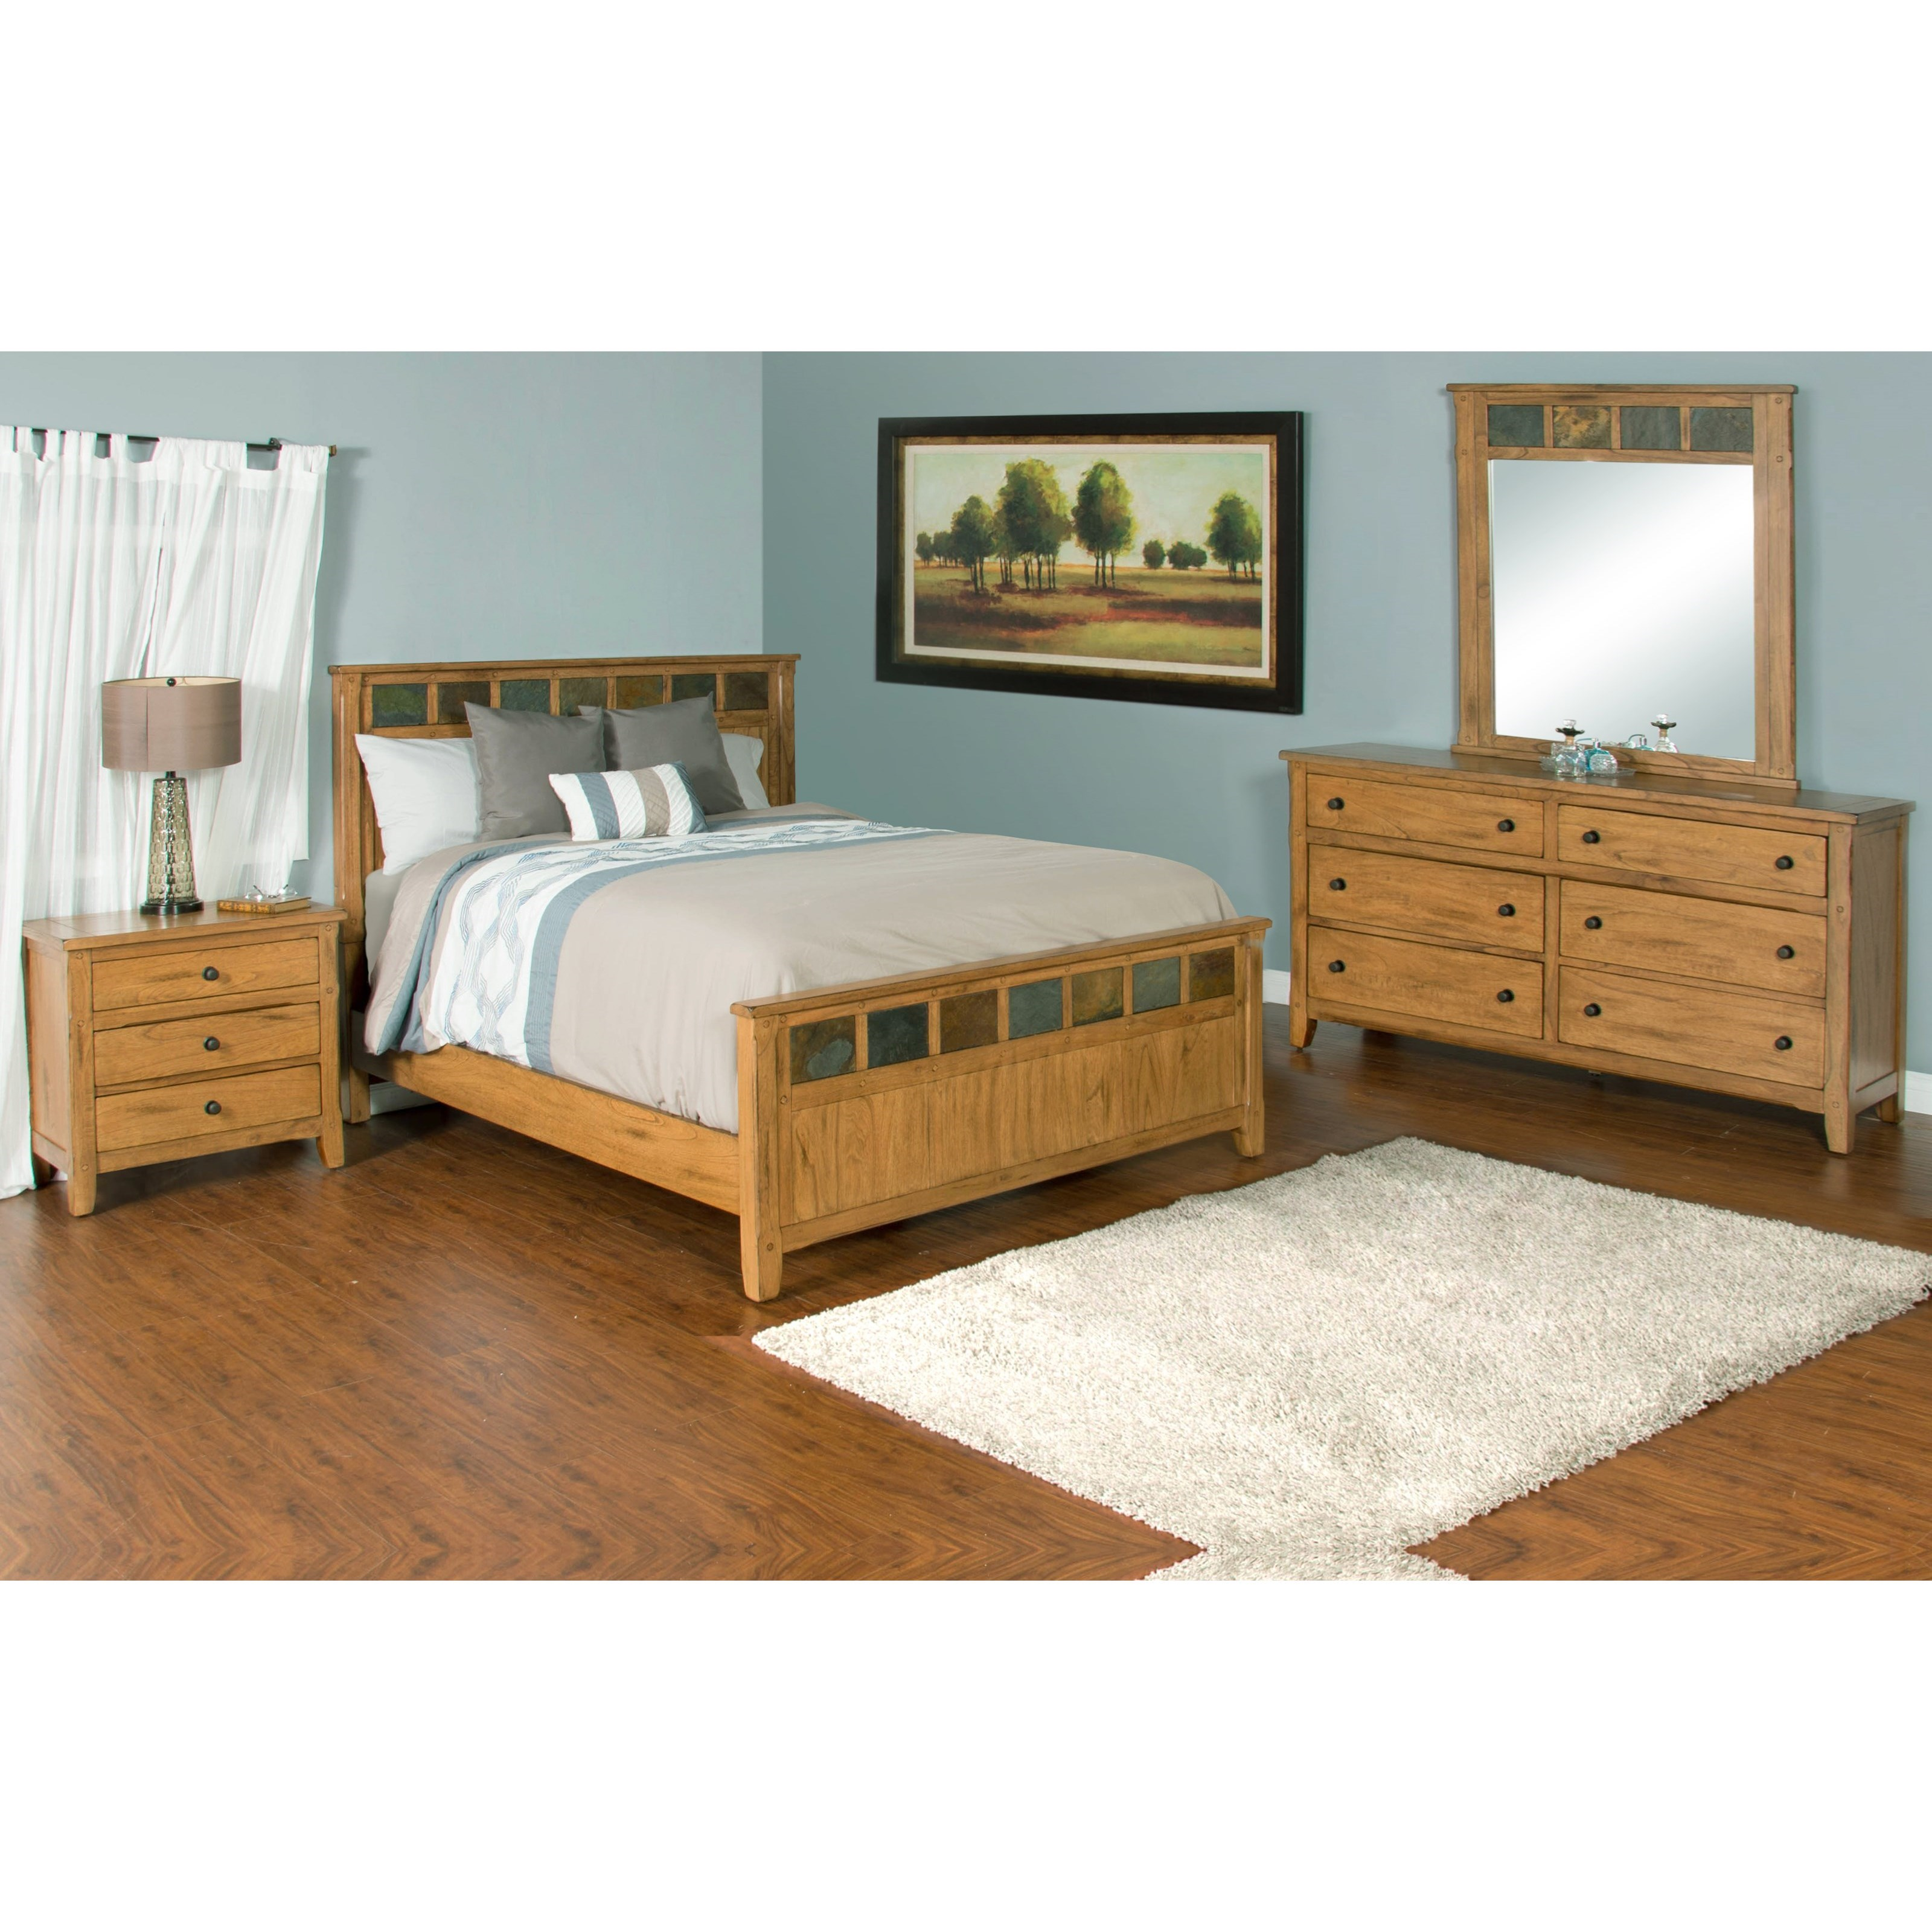 Sunny designs sedona night stand with 3 drawers conlin 39 s furniture night stands for Sunny designs bedroom furniture